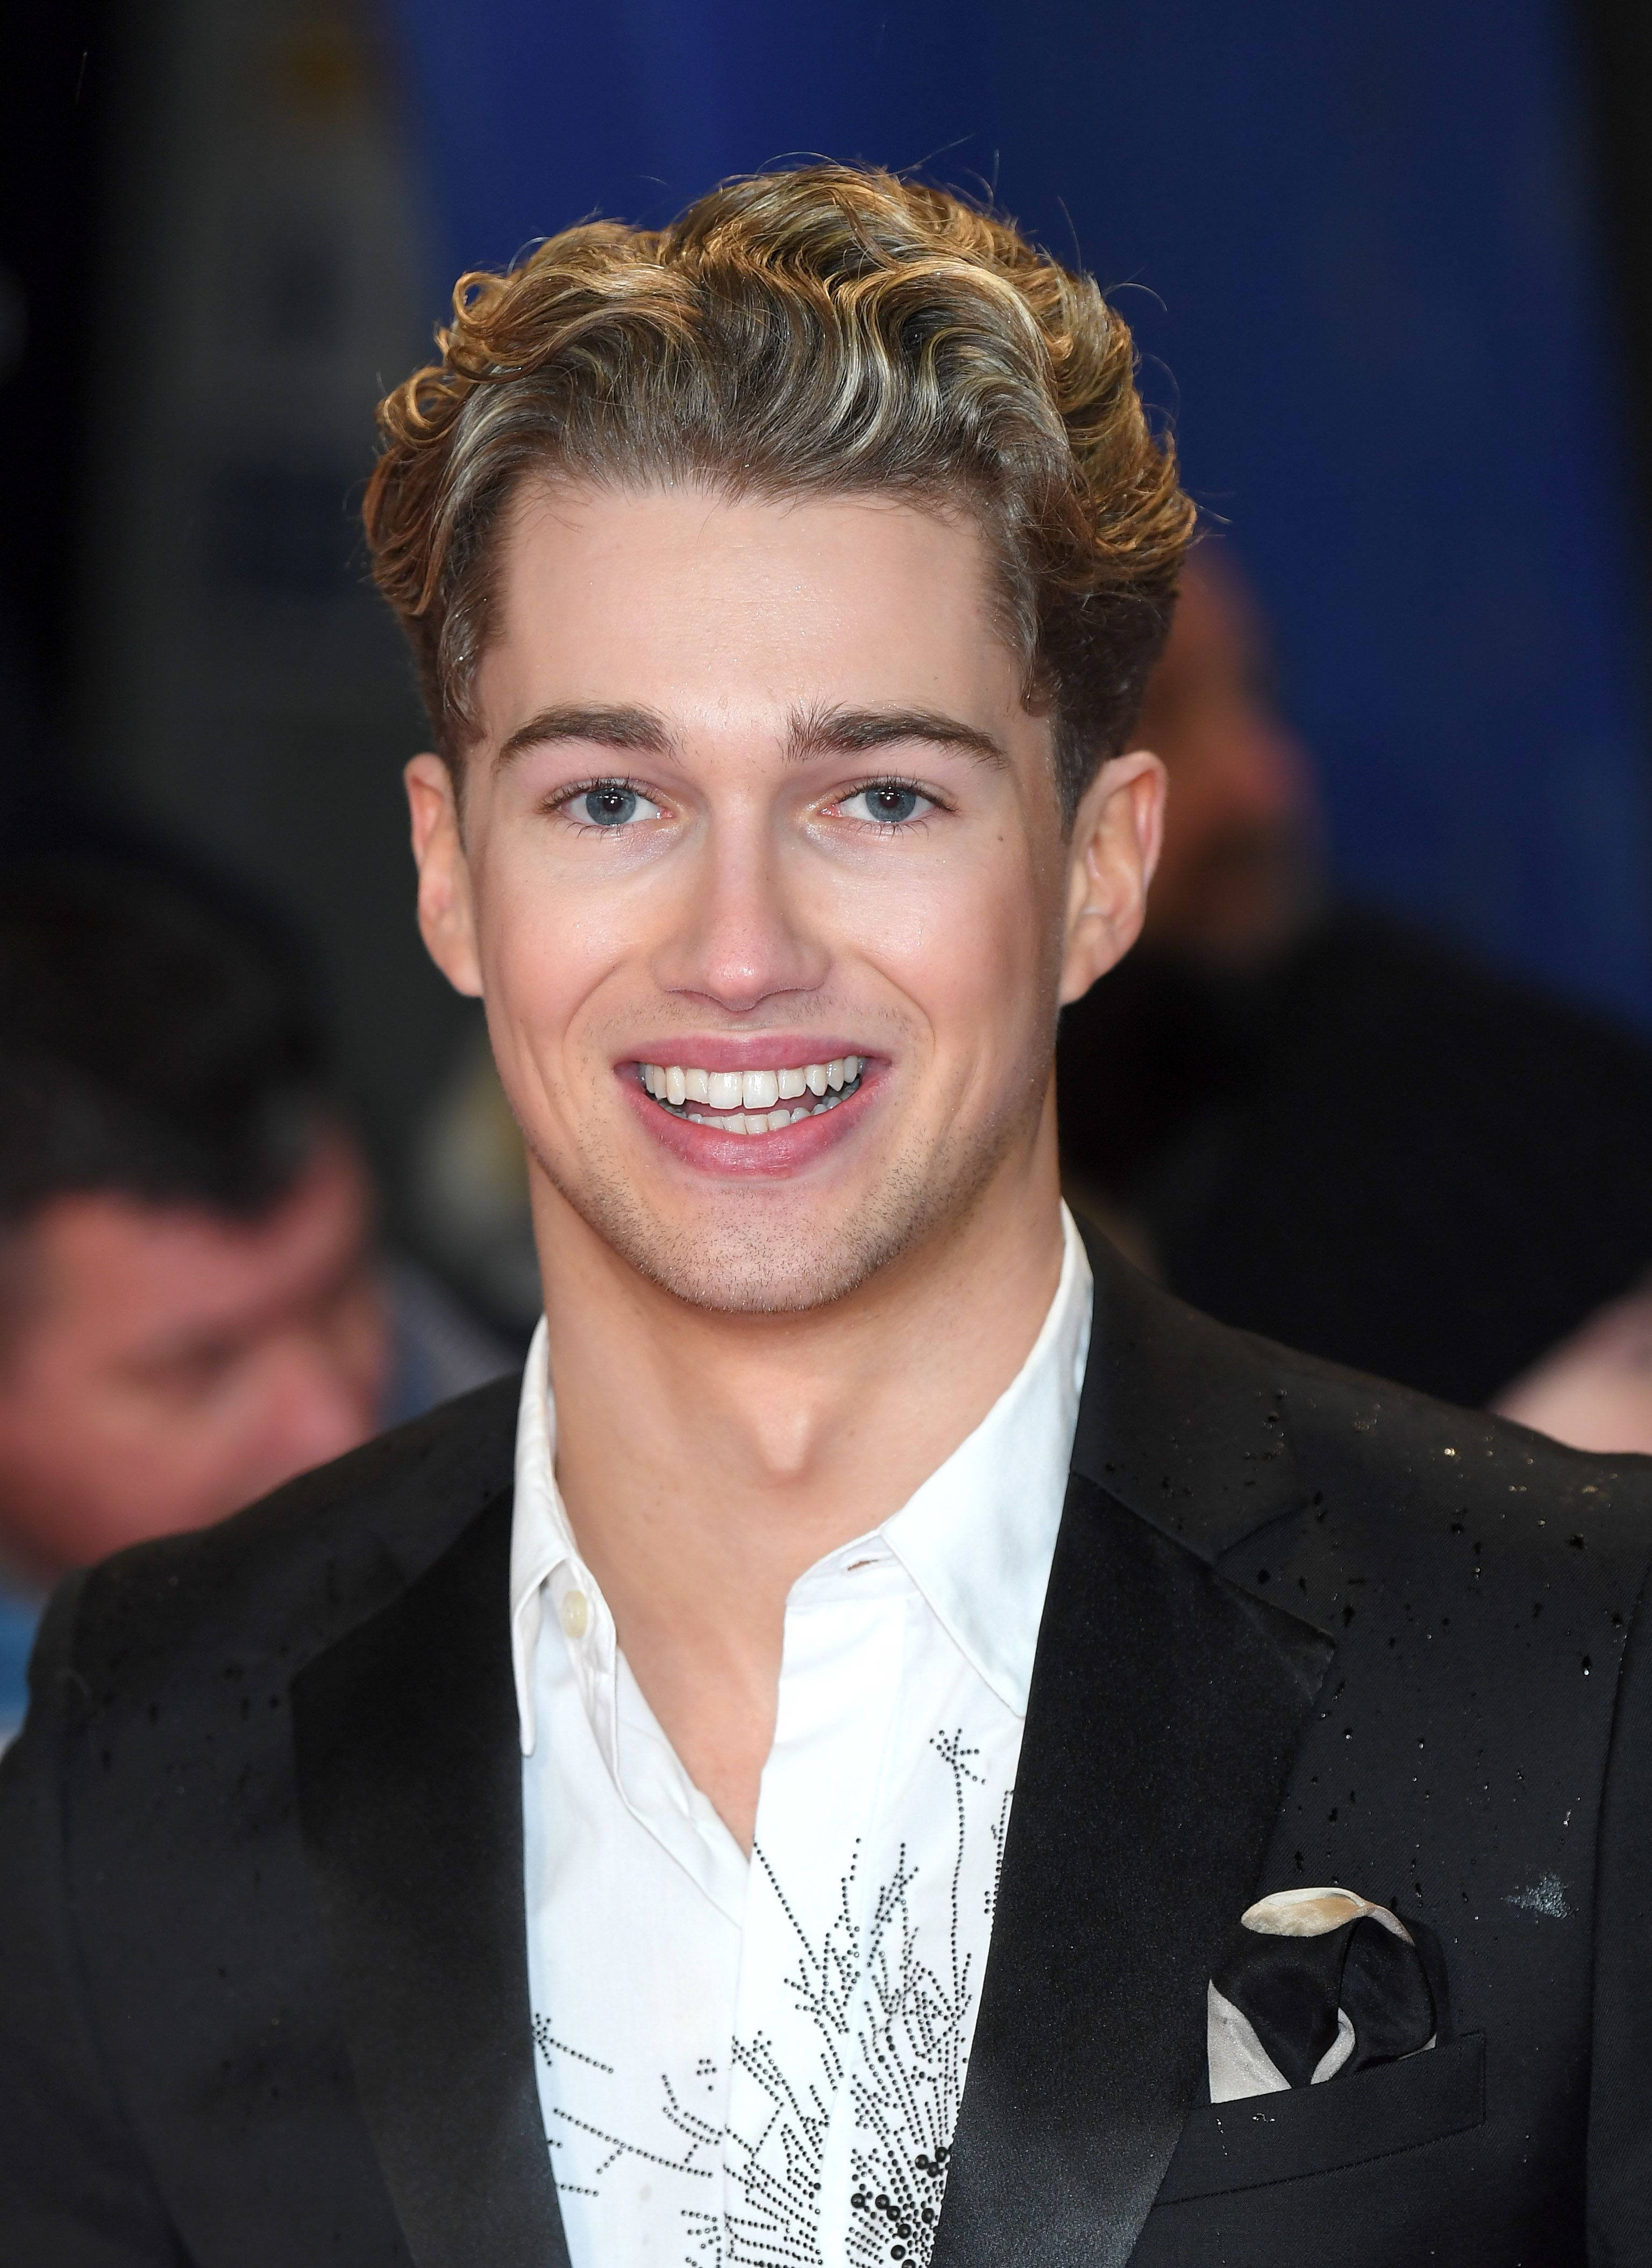 Strictly's AJ Pritchard Doesn't Want To 'Label' His